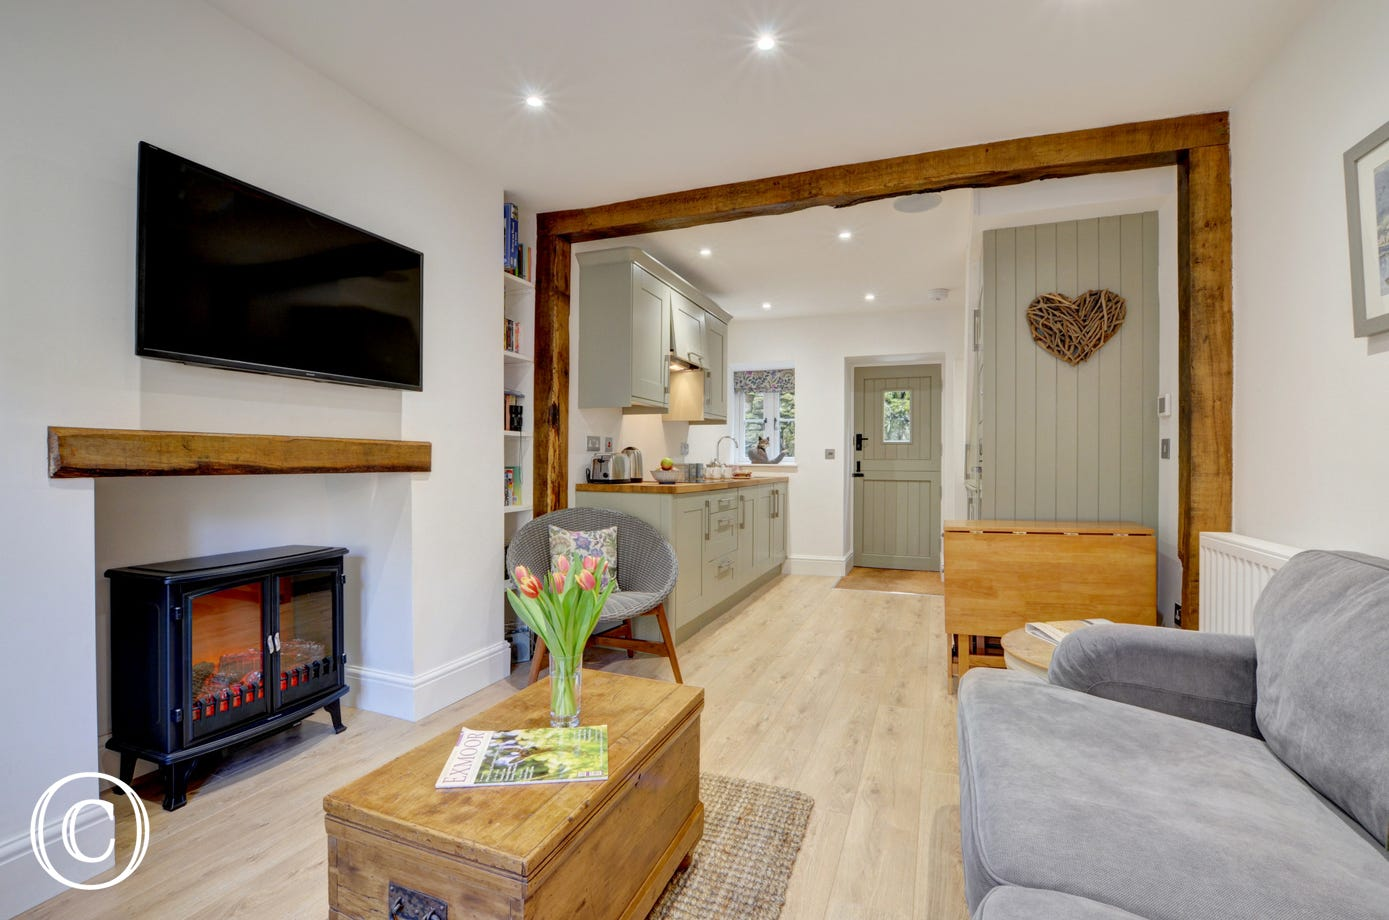 Fox cottage has a modern contemporary style yet the original character of this 17th century cottage can still be seen in the beams and inglenook fireplace